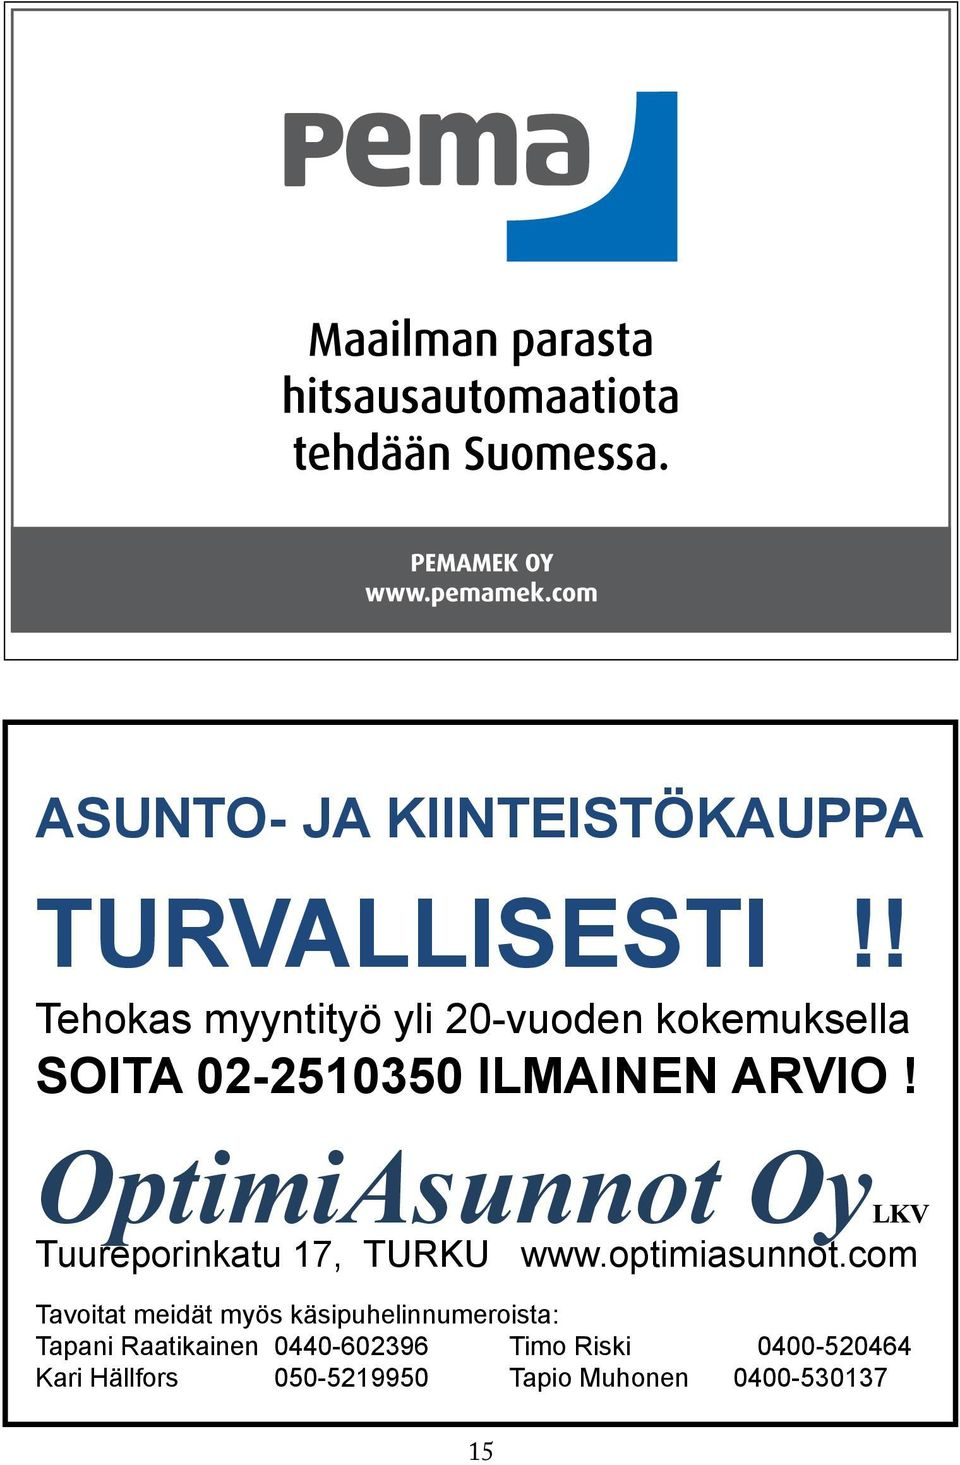 OptimiAsunnot OyLKV Tuureporinkatu 17, TURKU www.optimiasunnot.